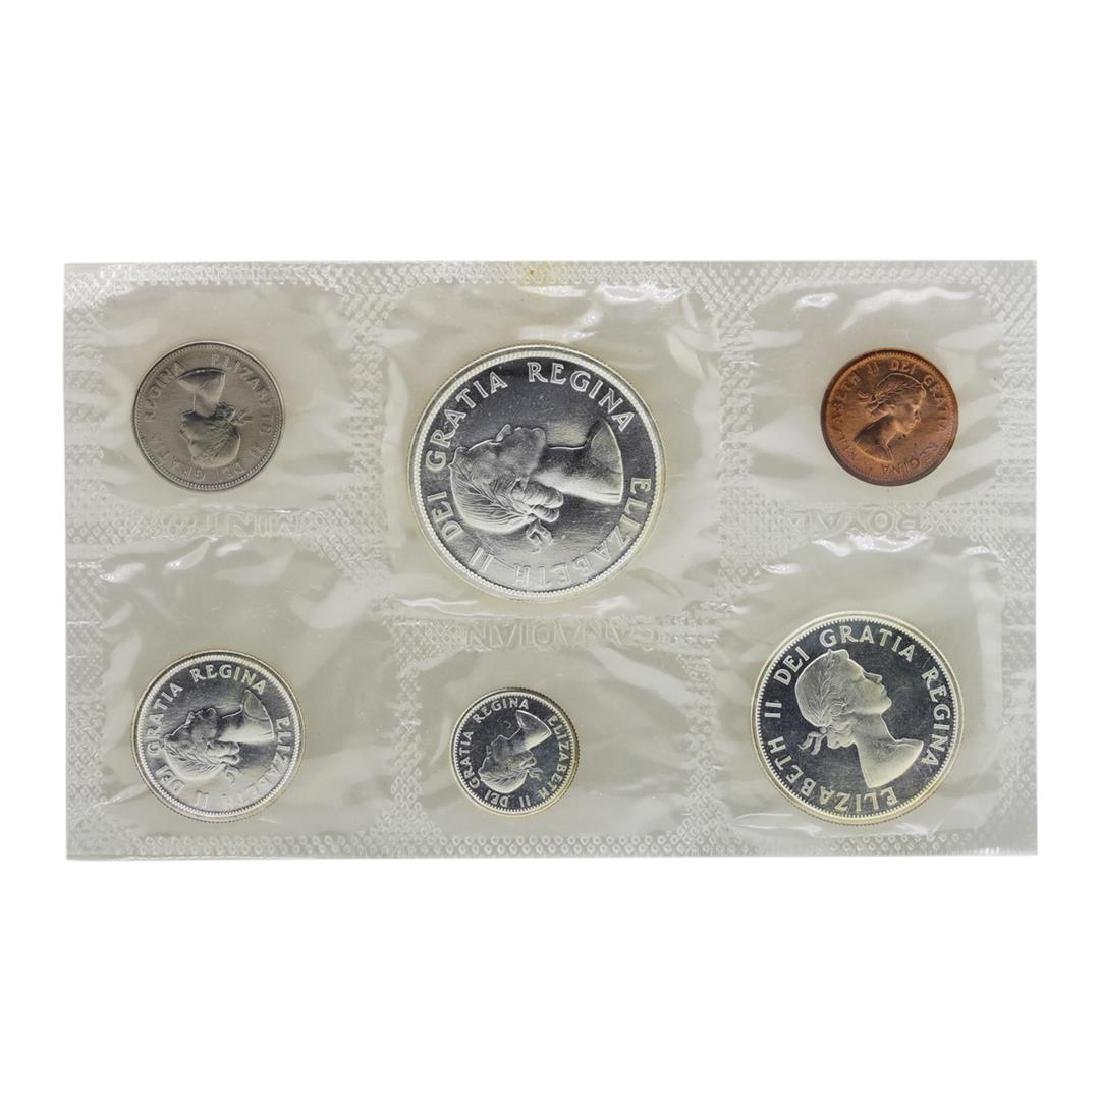 Lot of 1962-1964 Canada (6) Coin Proof Sets w/ Envelope - 4